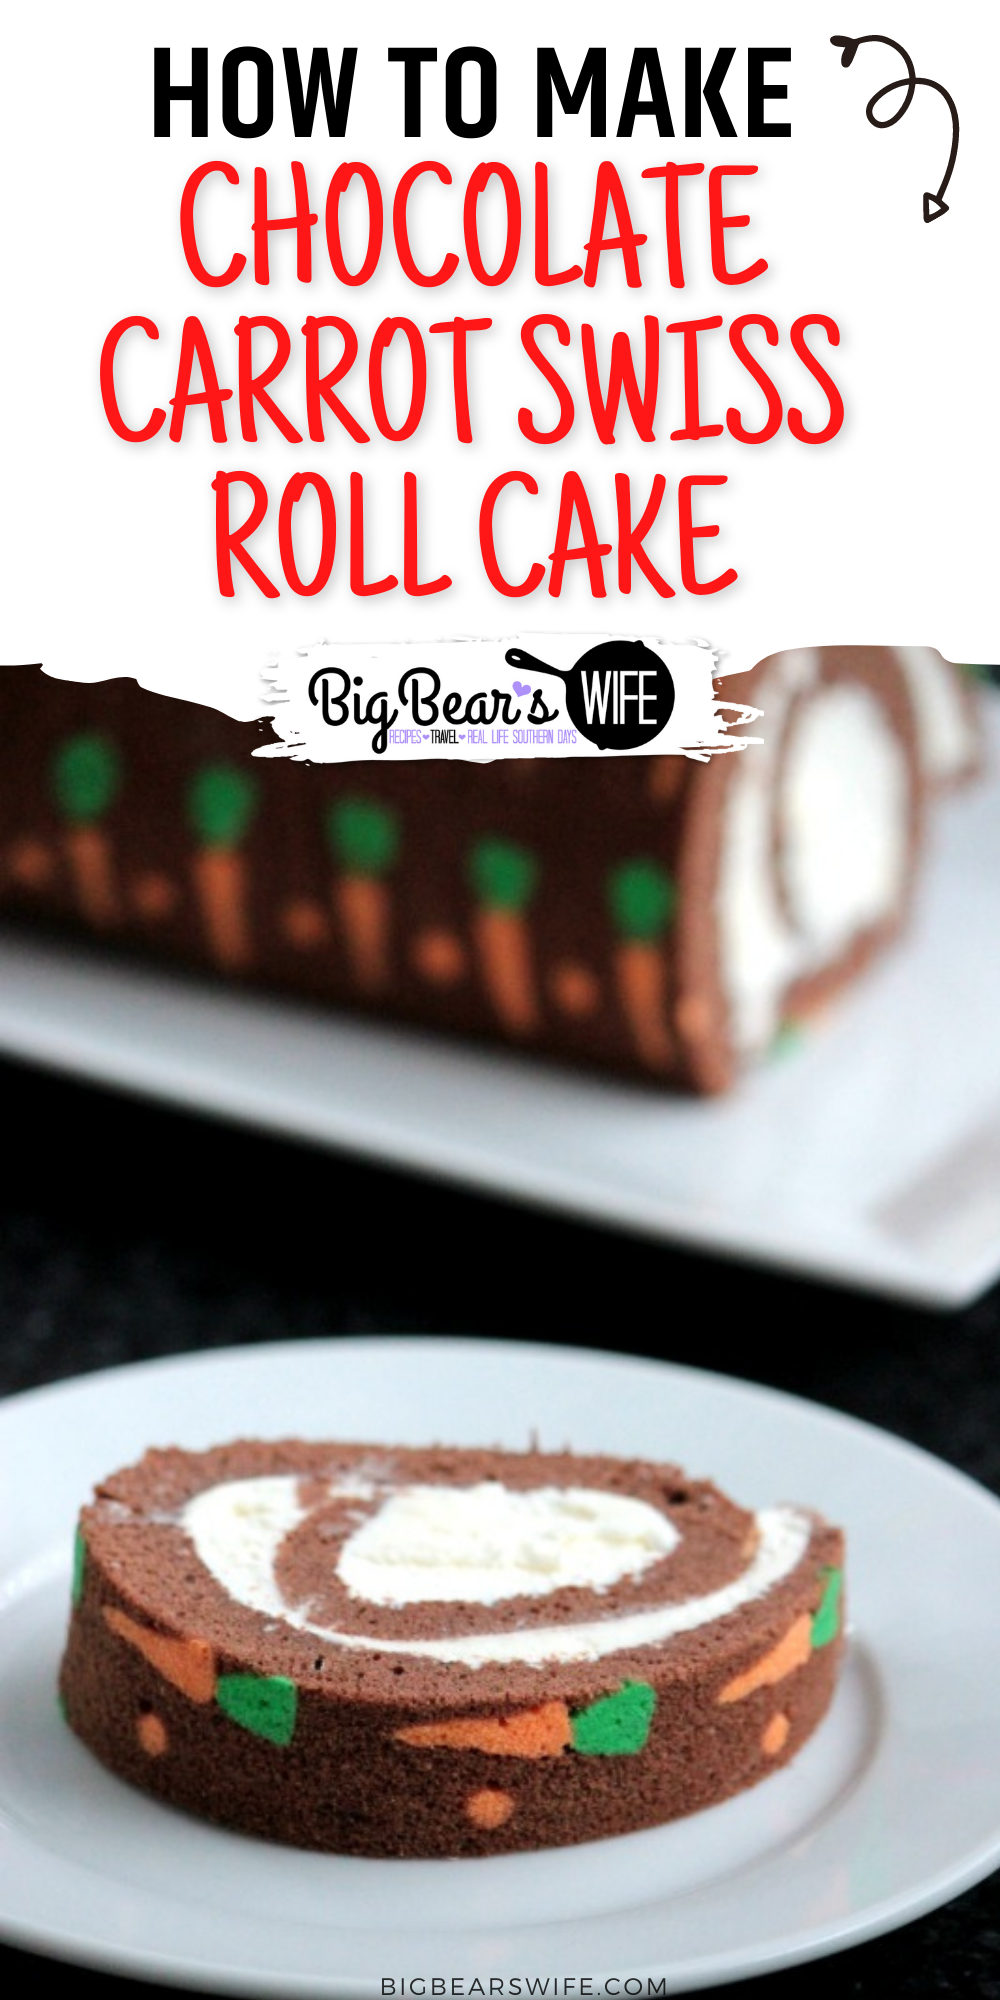 "This Chocolate Carrot Swiss Roll Cake is a chocolate sponge cake with super cute mini cake carrots baked right in! Then this ""carrot"" cake is filled with a cream cheese frosting and rolled up into a giant swiss roll cake!